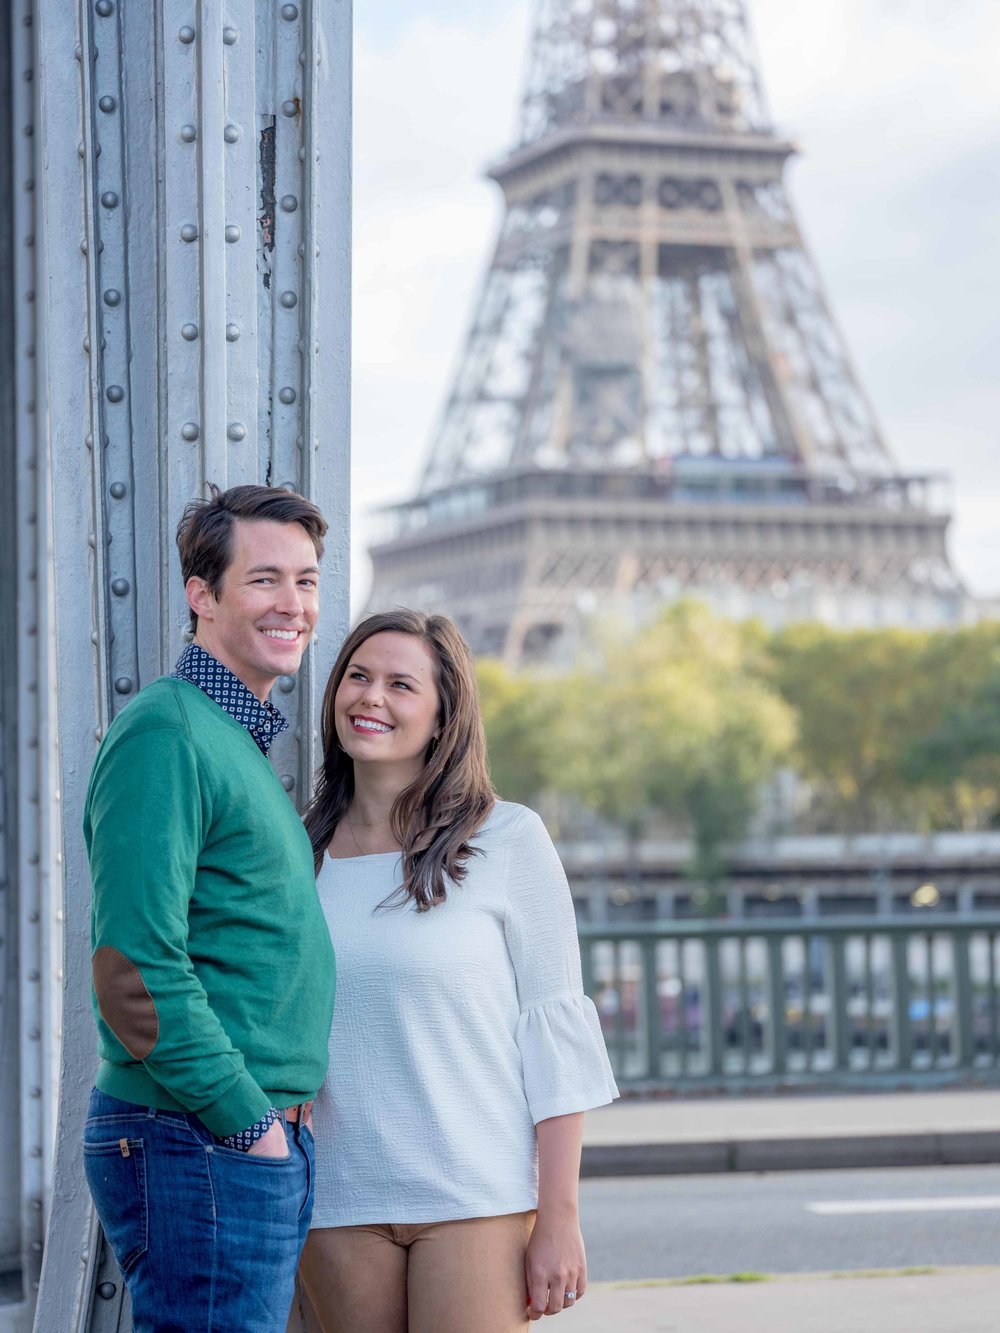 couple in love at eiffel tower in paris